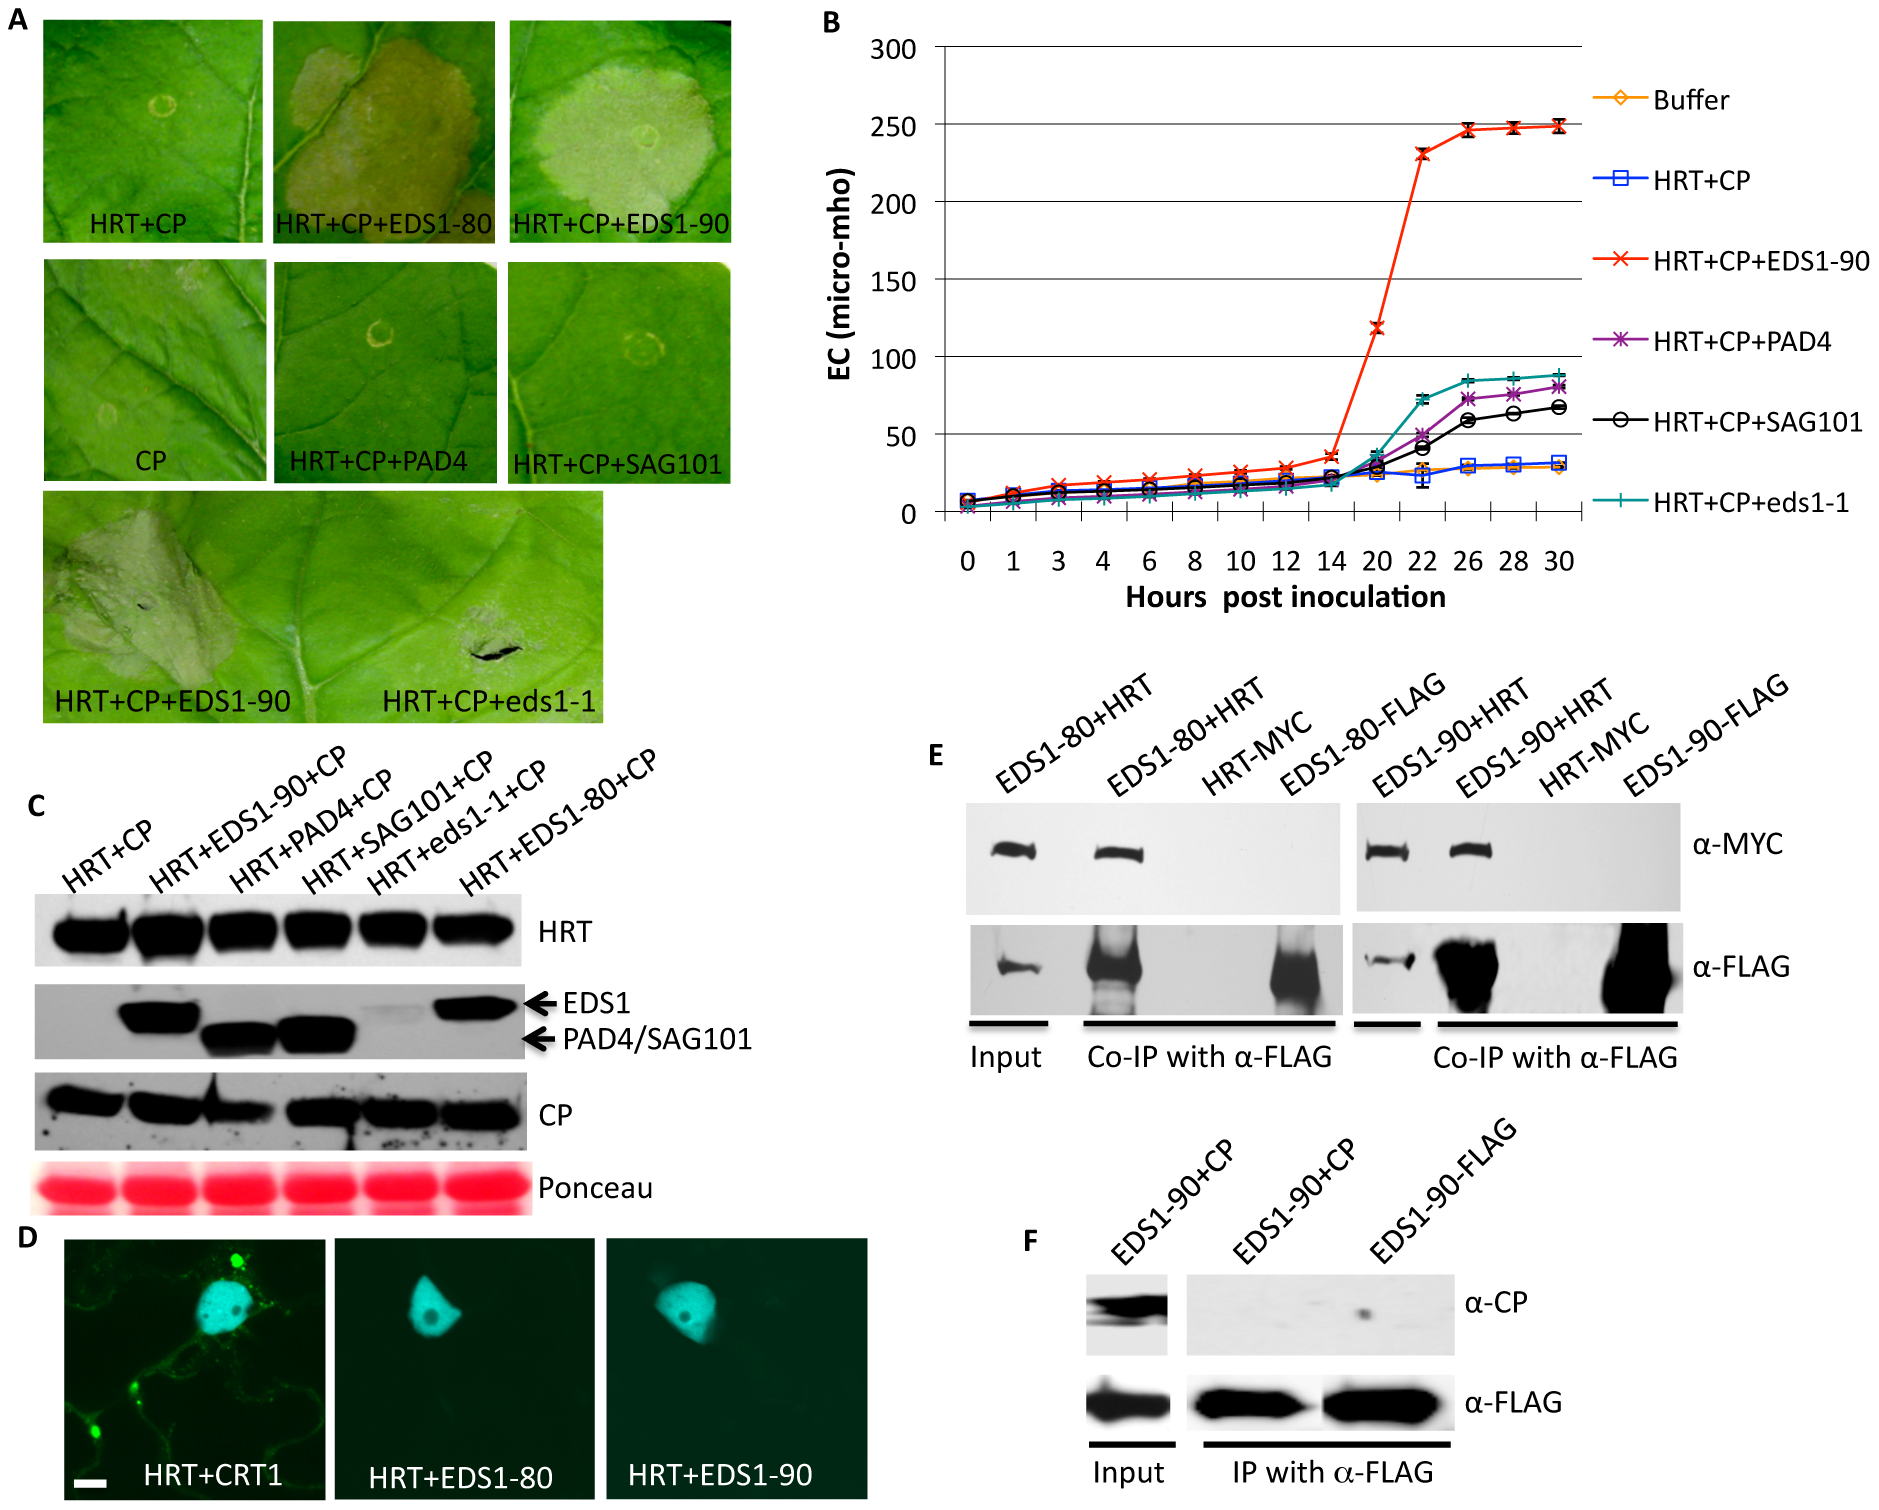 EDS1 interacts with HRT and promotes HRT-mediated cell death.